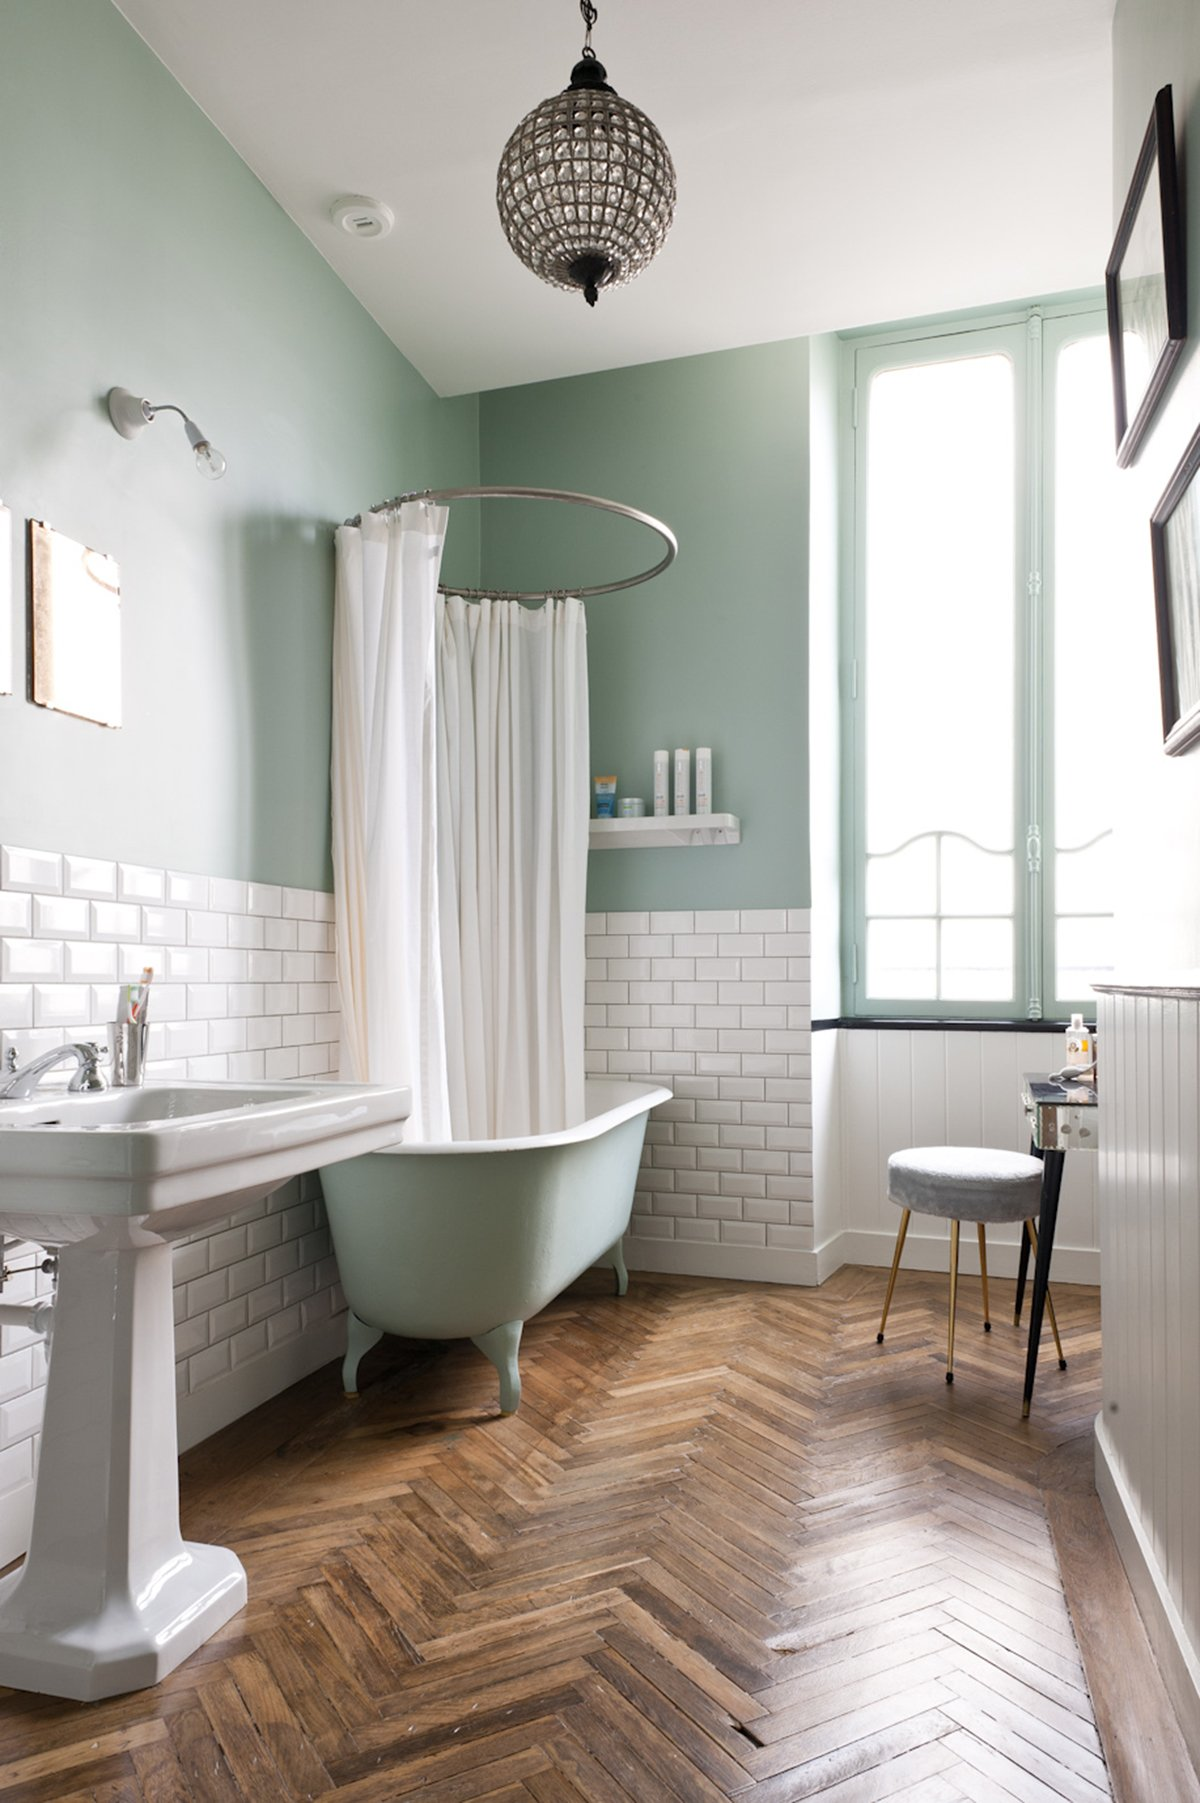 Hardwood floor bathroom with freestanding tub